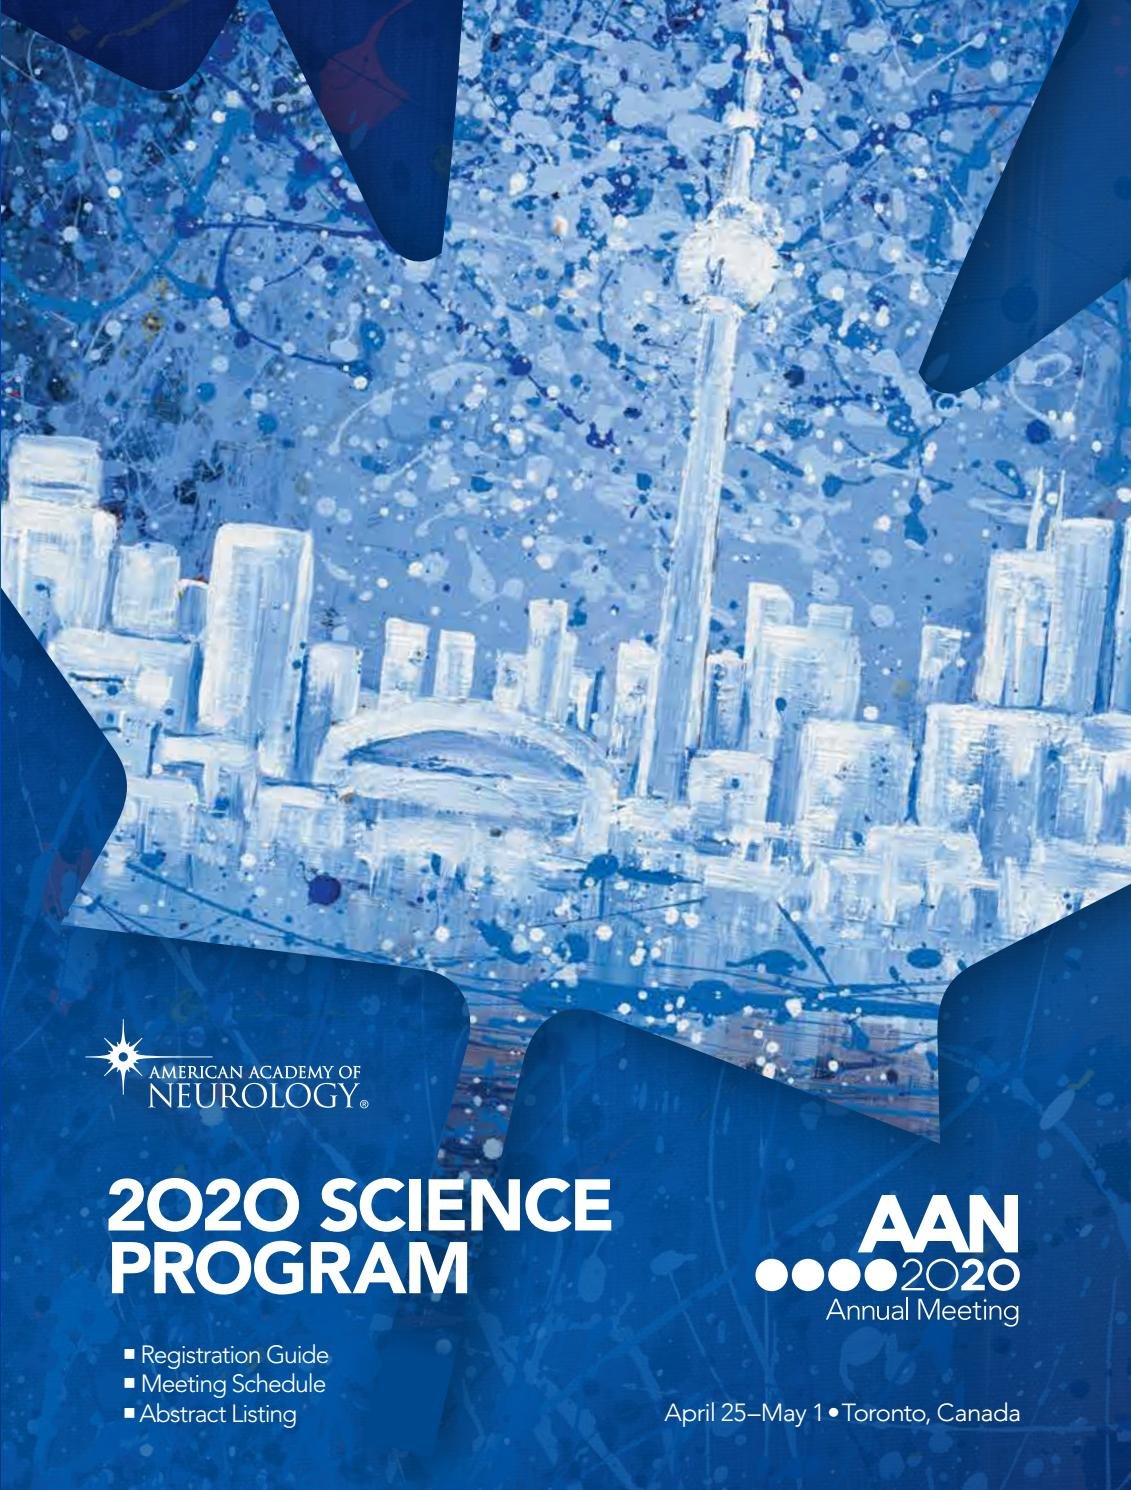 2020 AAN Annual Meeting Science Program by American Academy of